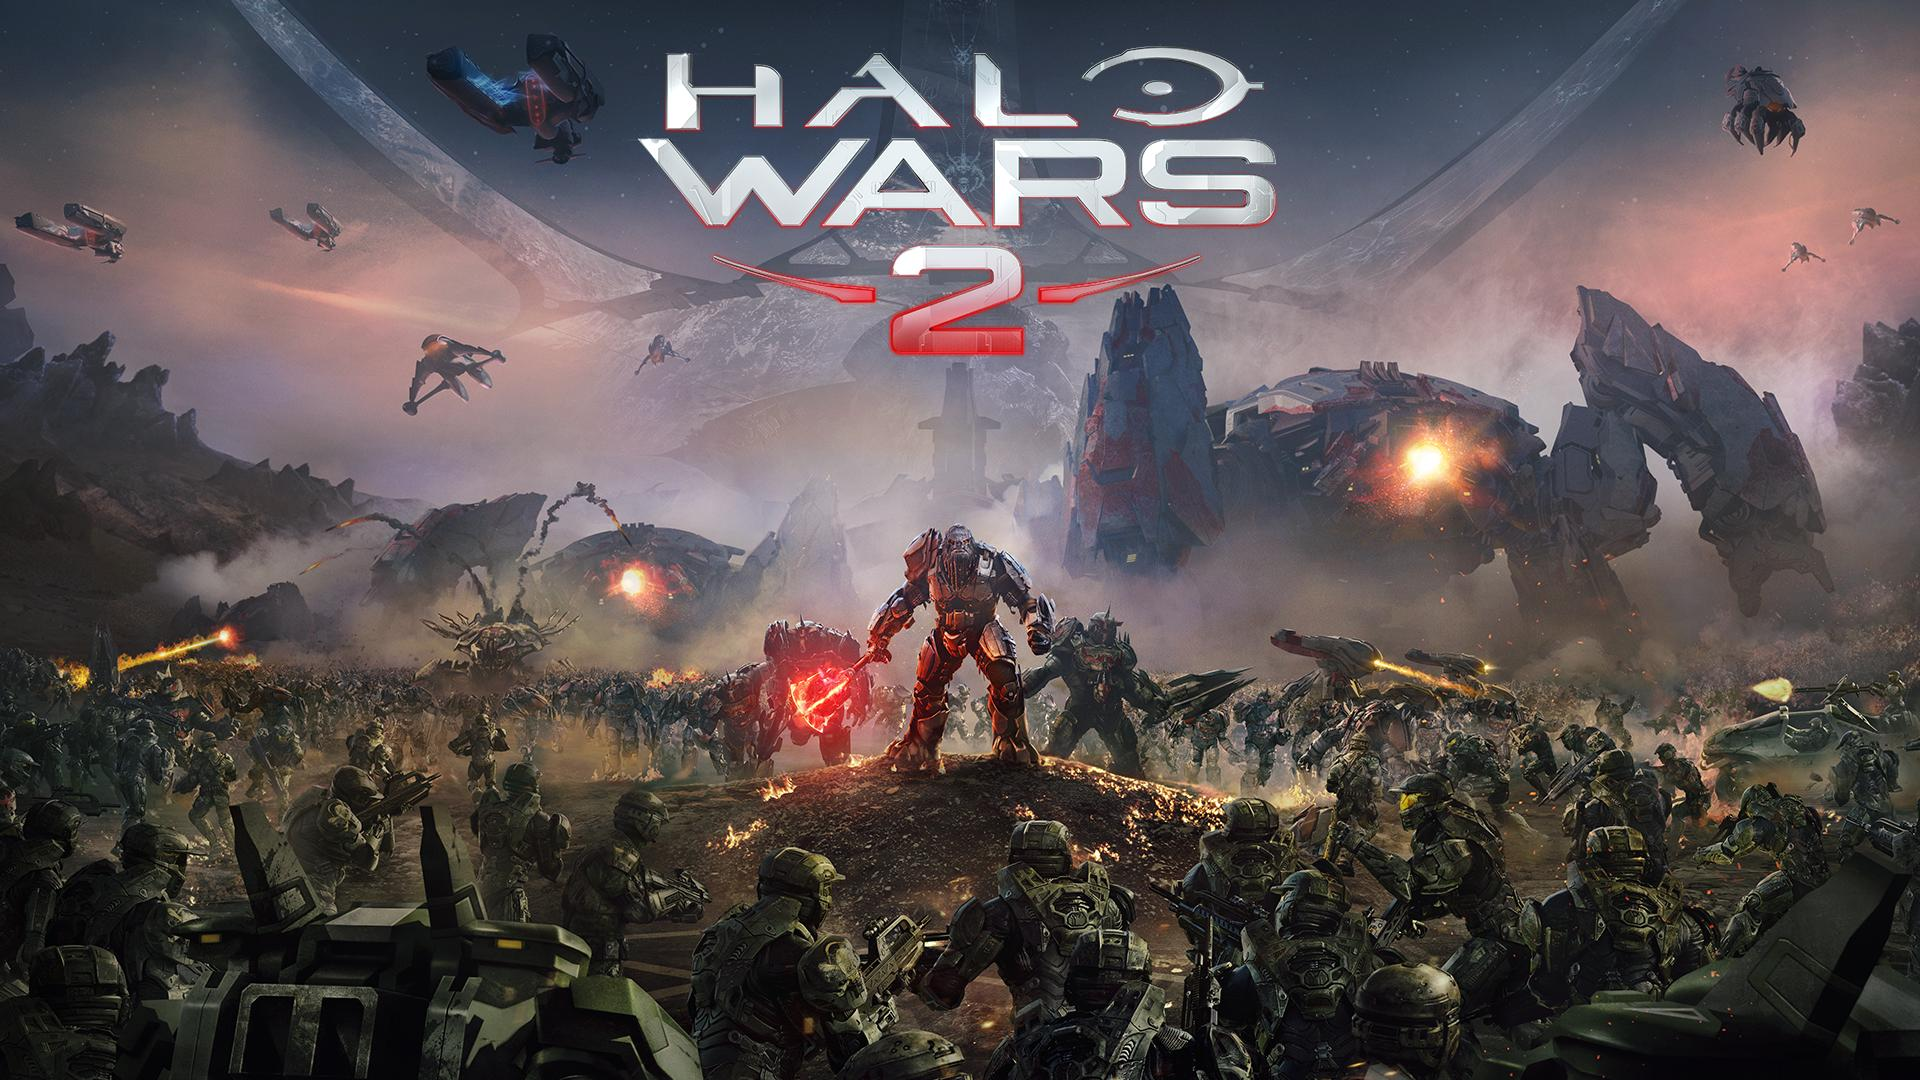 LagZero Analiza: Halo Wars 2